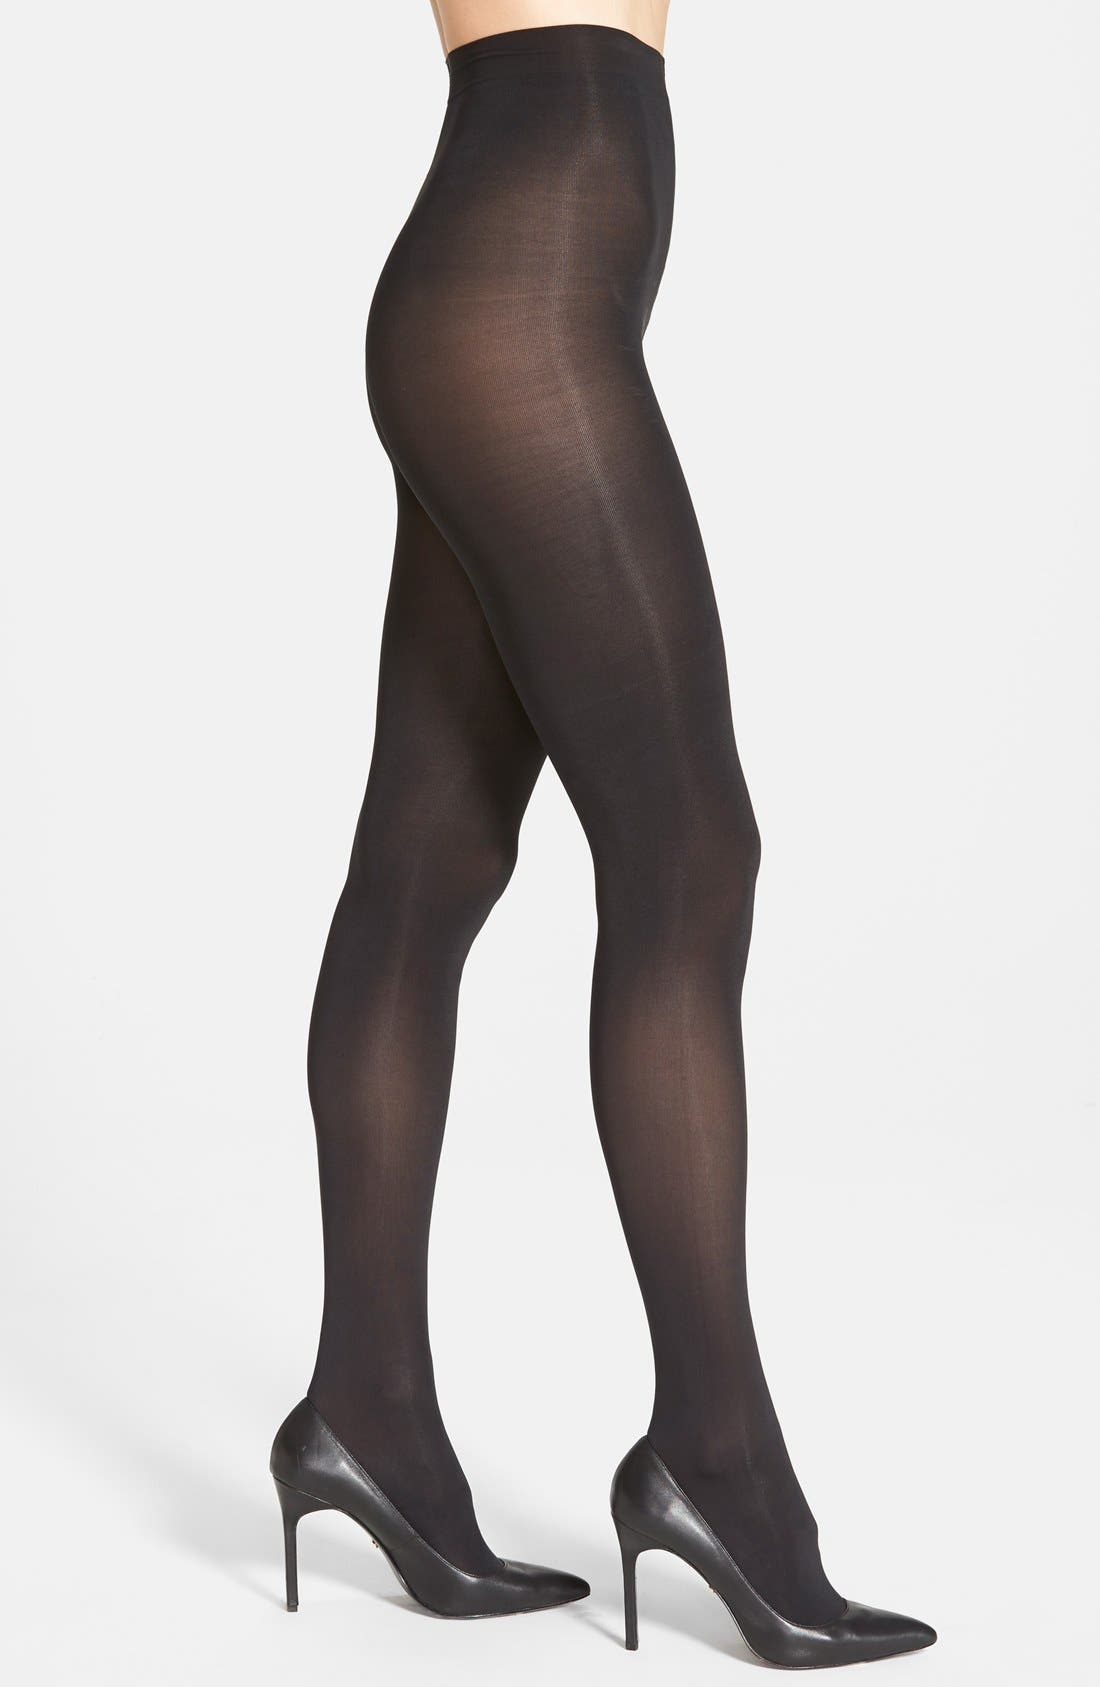 Main Image - Donna Karan 'Evolution' Satin Jersey Tights